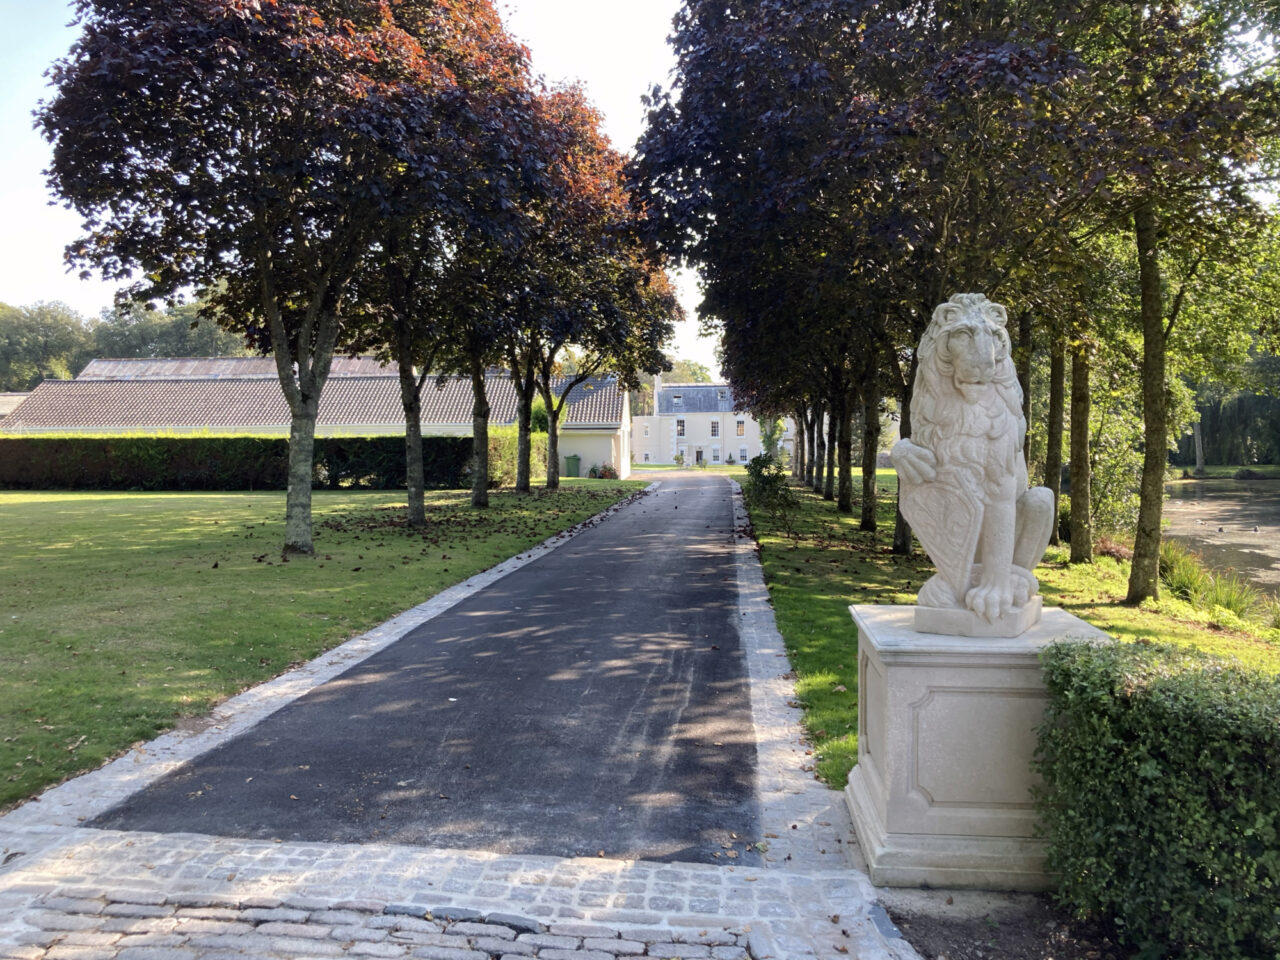 The driveway up to the manor, flanked by a lion statue